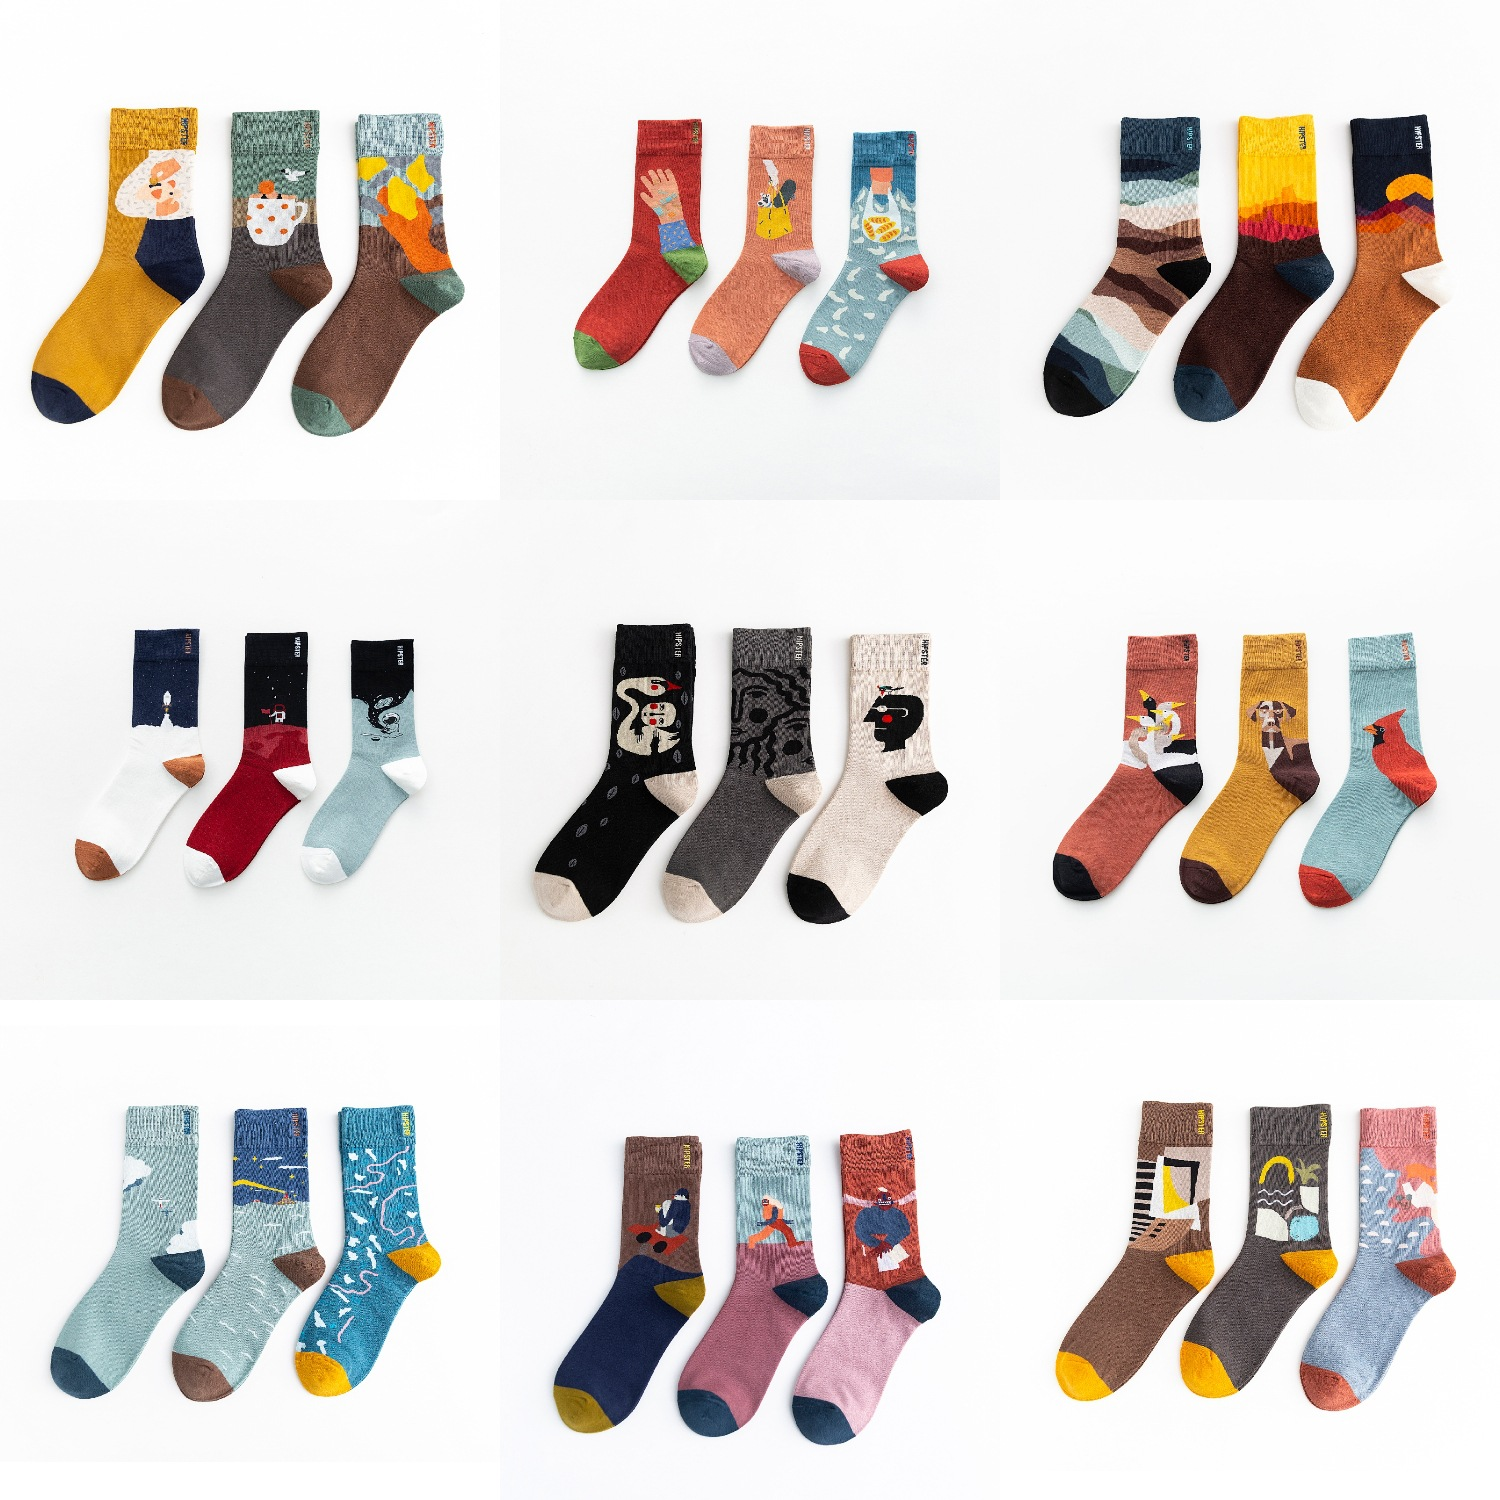 3 Pairs Crew Socks Mid Length Unisex Funny Cute Socks Gift Casual Street Wear Creative Cartoon Oil Painting Socks Funny Socks